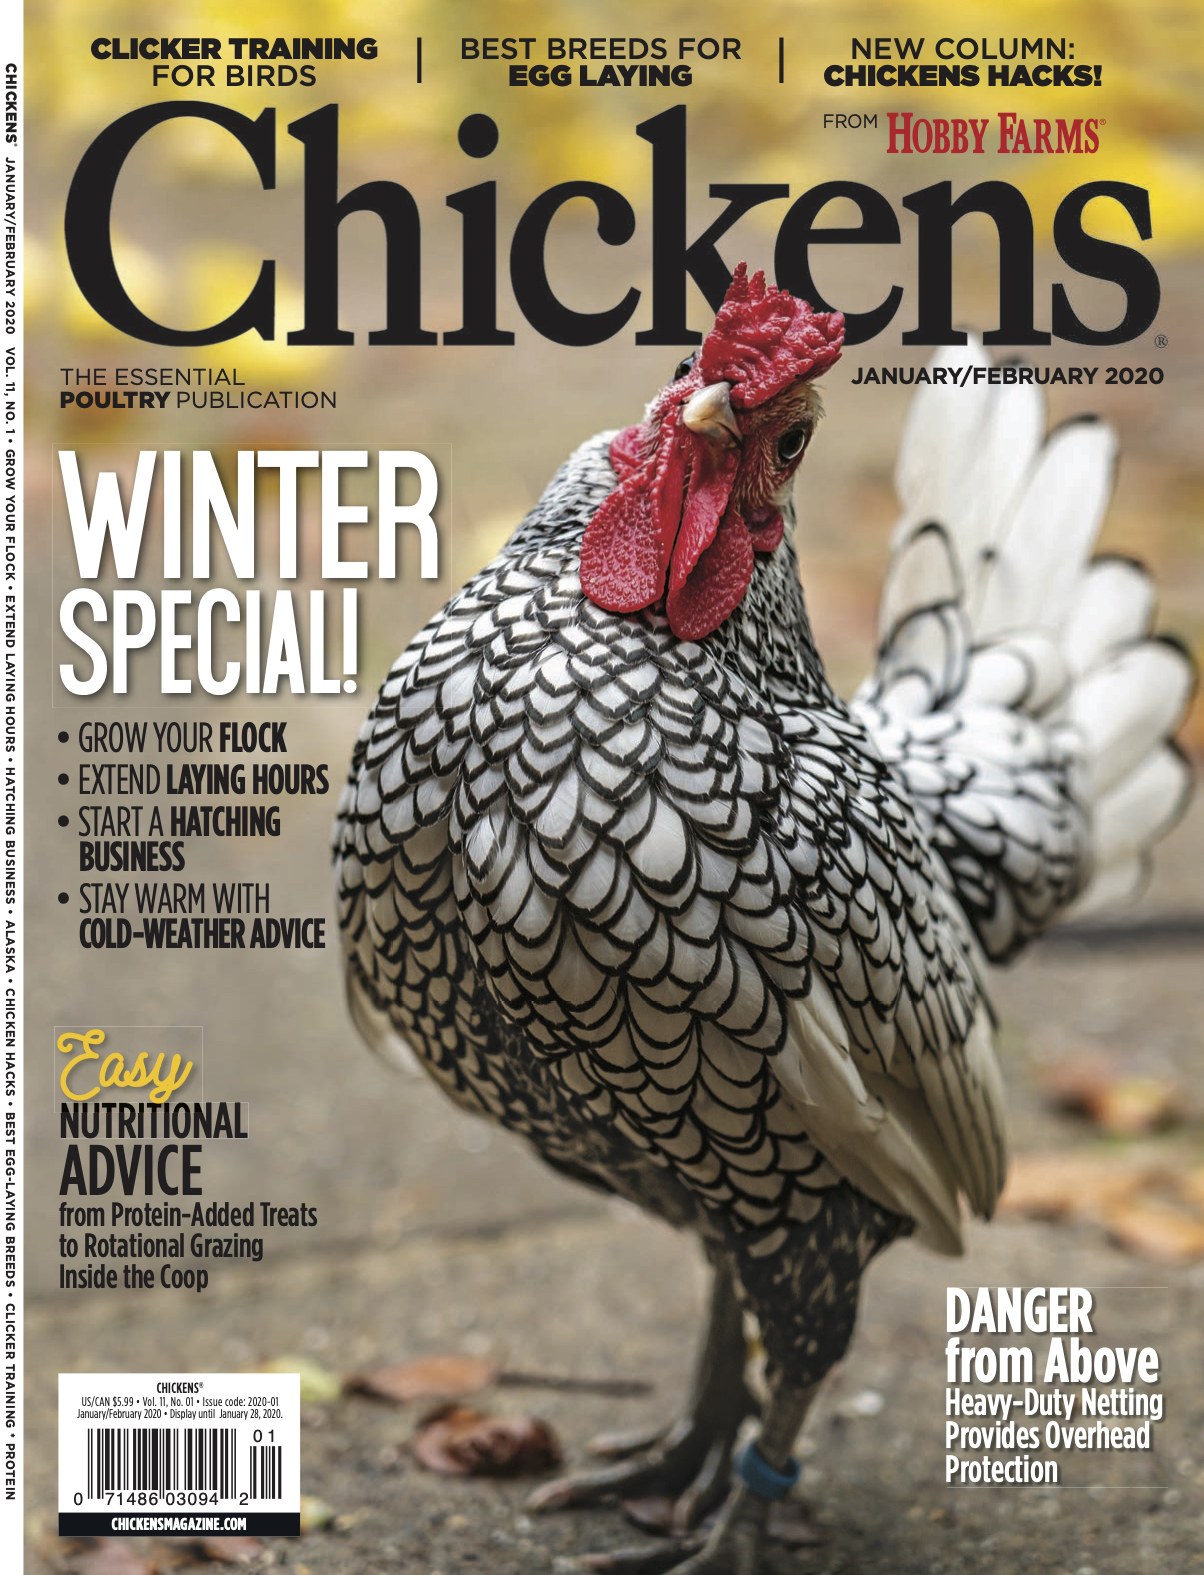 chickens magazine tear sheet cover image january 2020